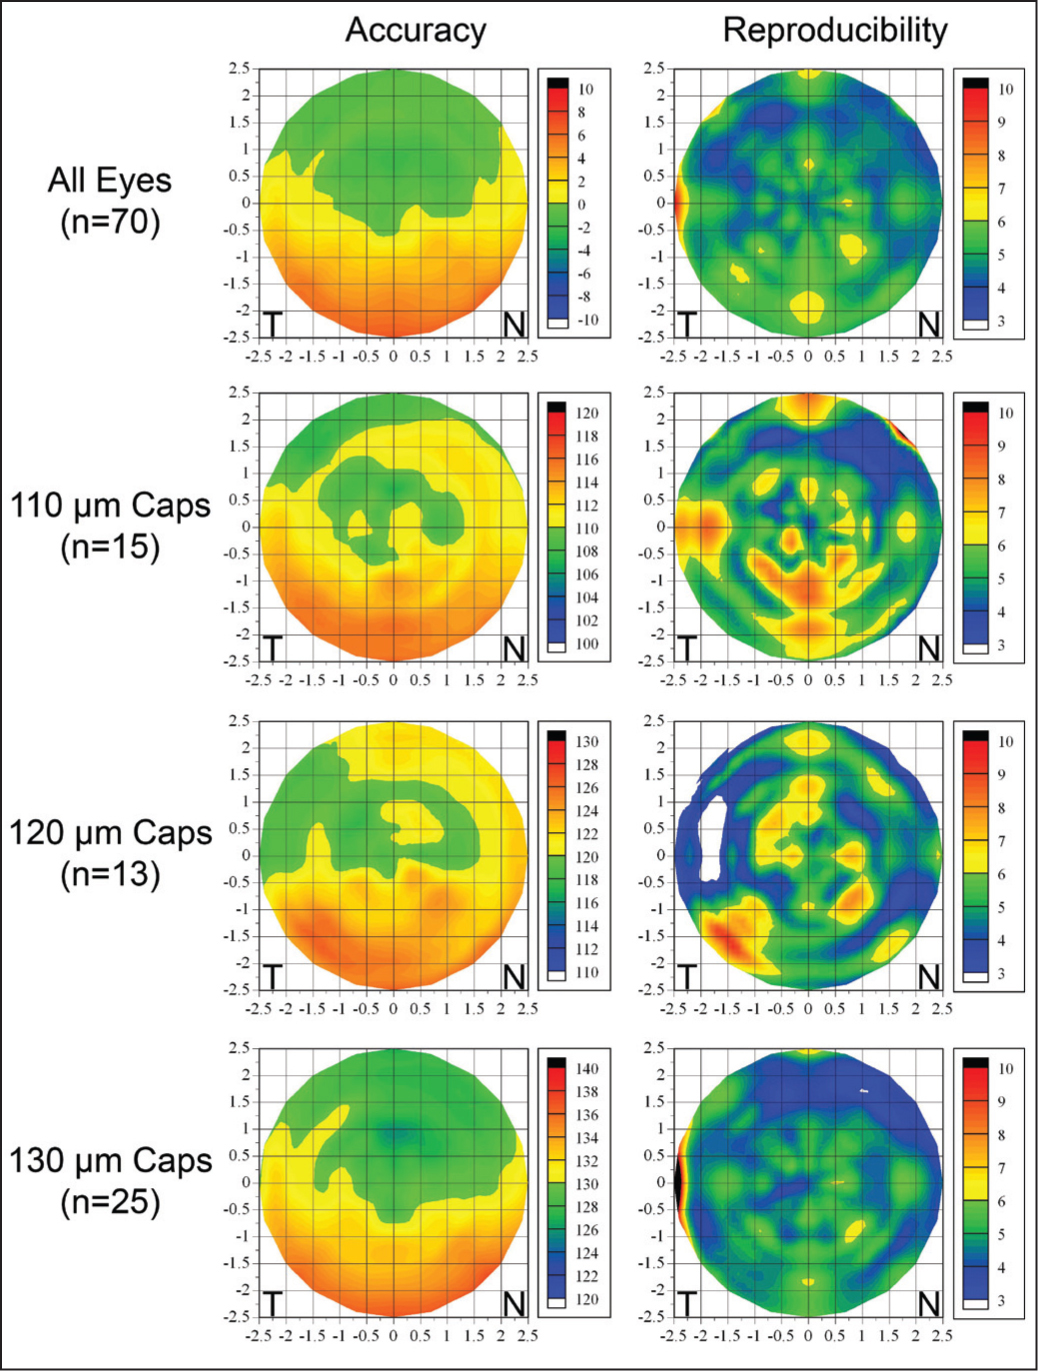 Topographical maps of the accuracy and reproducibility of cap thickness centered on the corneal vertex for the central 5-mm diameter zone. All left eyes were mirrored so that positive x-values represented the nasal cornea and negative x-values represented the temporal cornea. A Cartesian 1-mm grid was superimposed with the origin at the corneal vertex. All eyes were included after normalizing the cap thickness data for the intended cap thickness. For the accuracy map, the break point was set to 0 so that positive values (yellow/red) represented areas where the cap was thicker than intended and negative values (green/blue) represented areas where the cap was thinner than intended. The mean cap thickness was displayed to represent the accuracy grouped for 110, 120, and 130 μm intended cap thicknesses. The color scale represents the cap thickness in microns and the break point was set to the intended cap thickness so that yellow and red represented areas where the cap was thicker than intended and green and blue represented areas where the cap was thinner than intended. The color scale for all reproducibility maps represented the standard deviation in microns. The break point was set to 6 μm so that all areas where the reproducibility was better than 6 μm were displayed in green or blue.